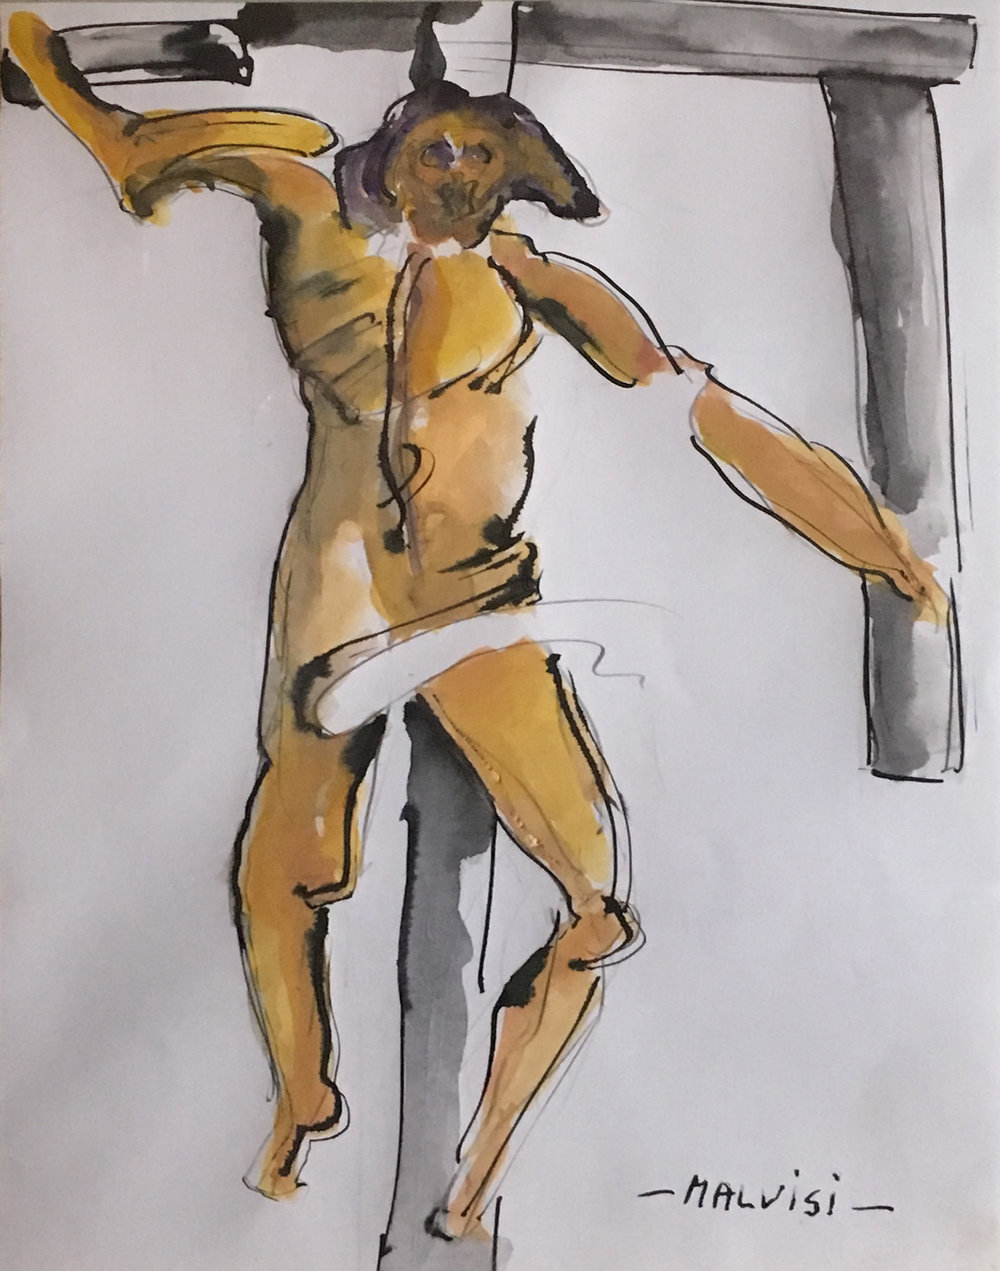 <b>Crucifix</b><br> (Orig. Crocifisso) <br> 2009 Indian ink and watercolor <br> cm 34 x 49